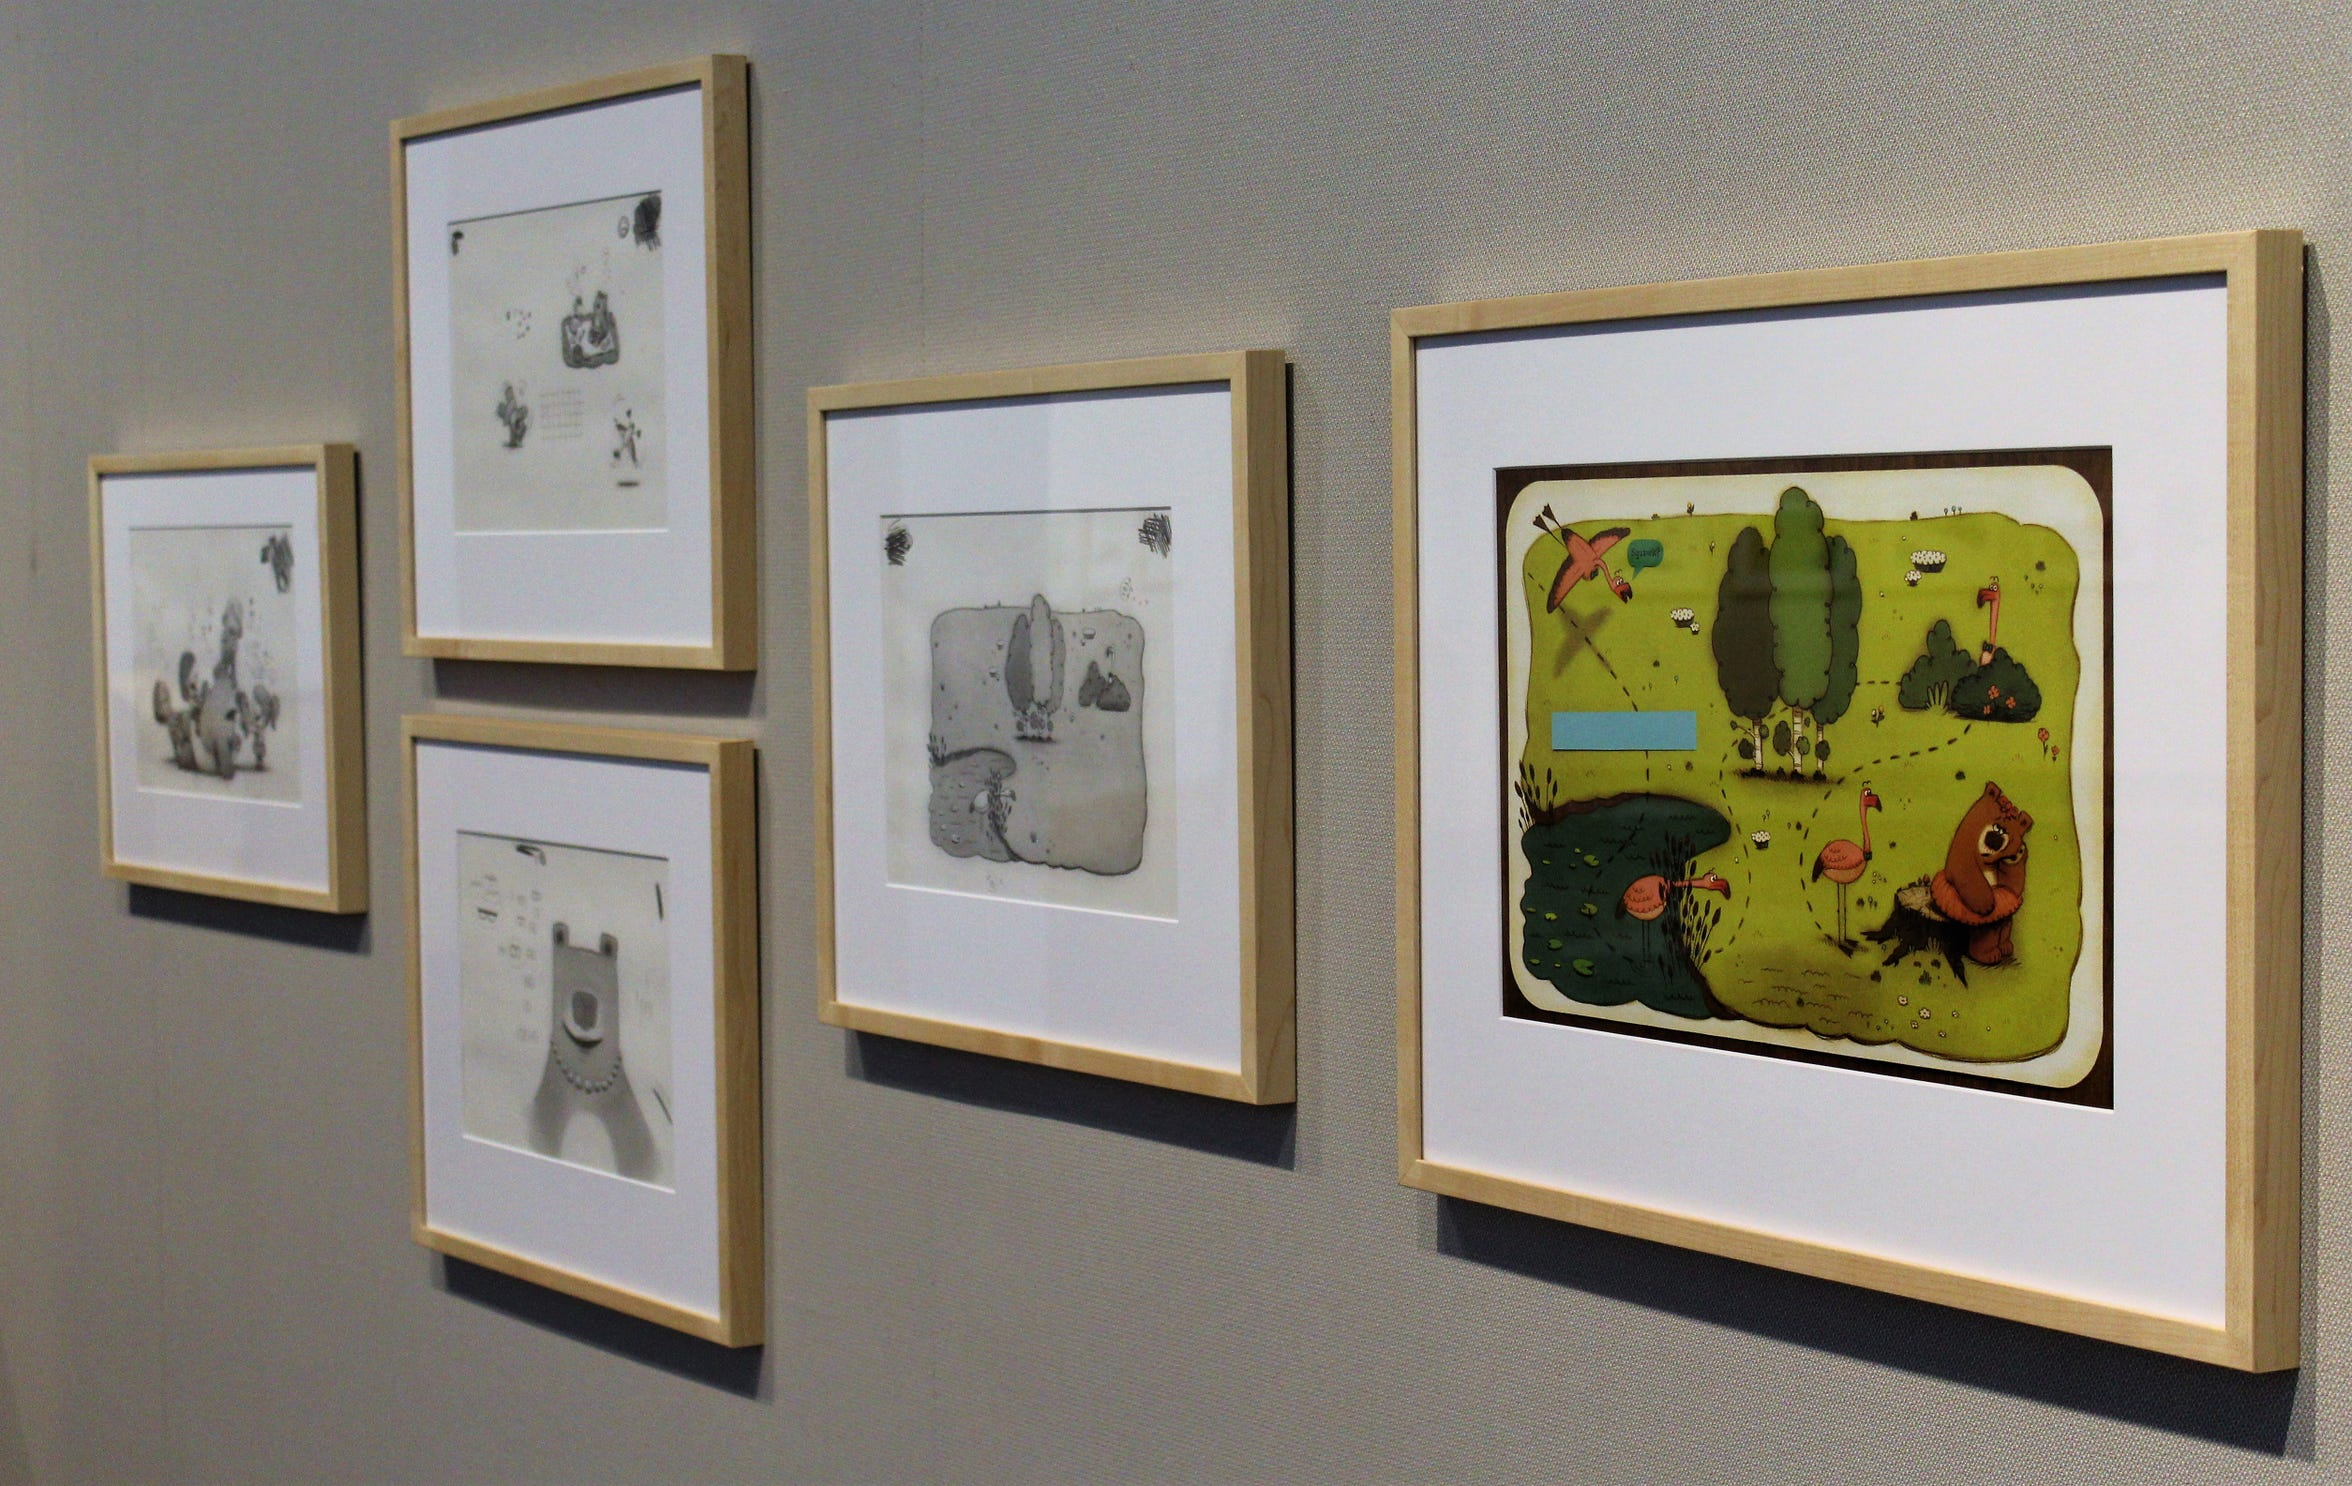 The gallery at the National Center for Children's Illustrated Literature comes alive with the work of Peter Brown.